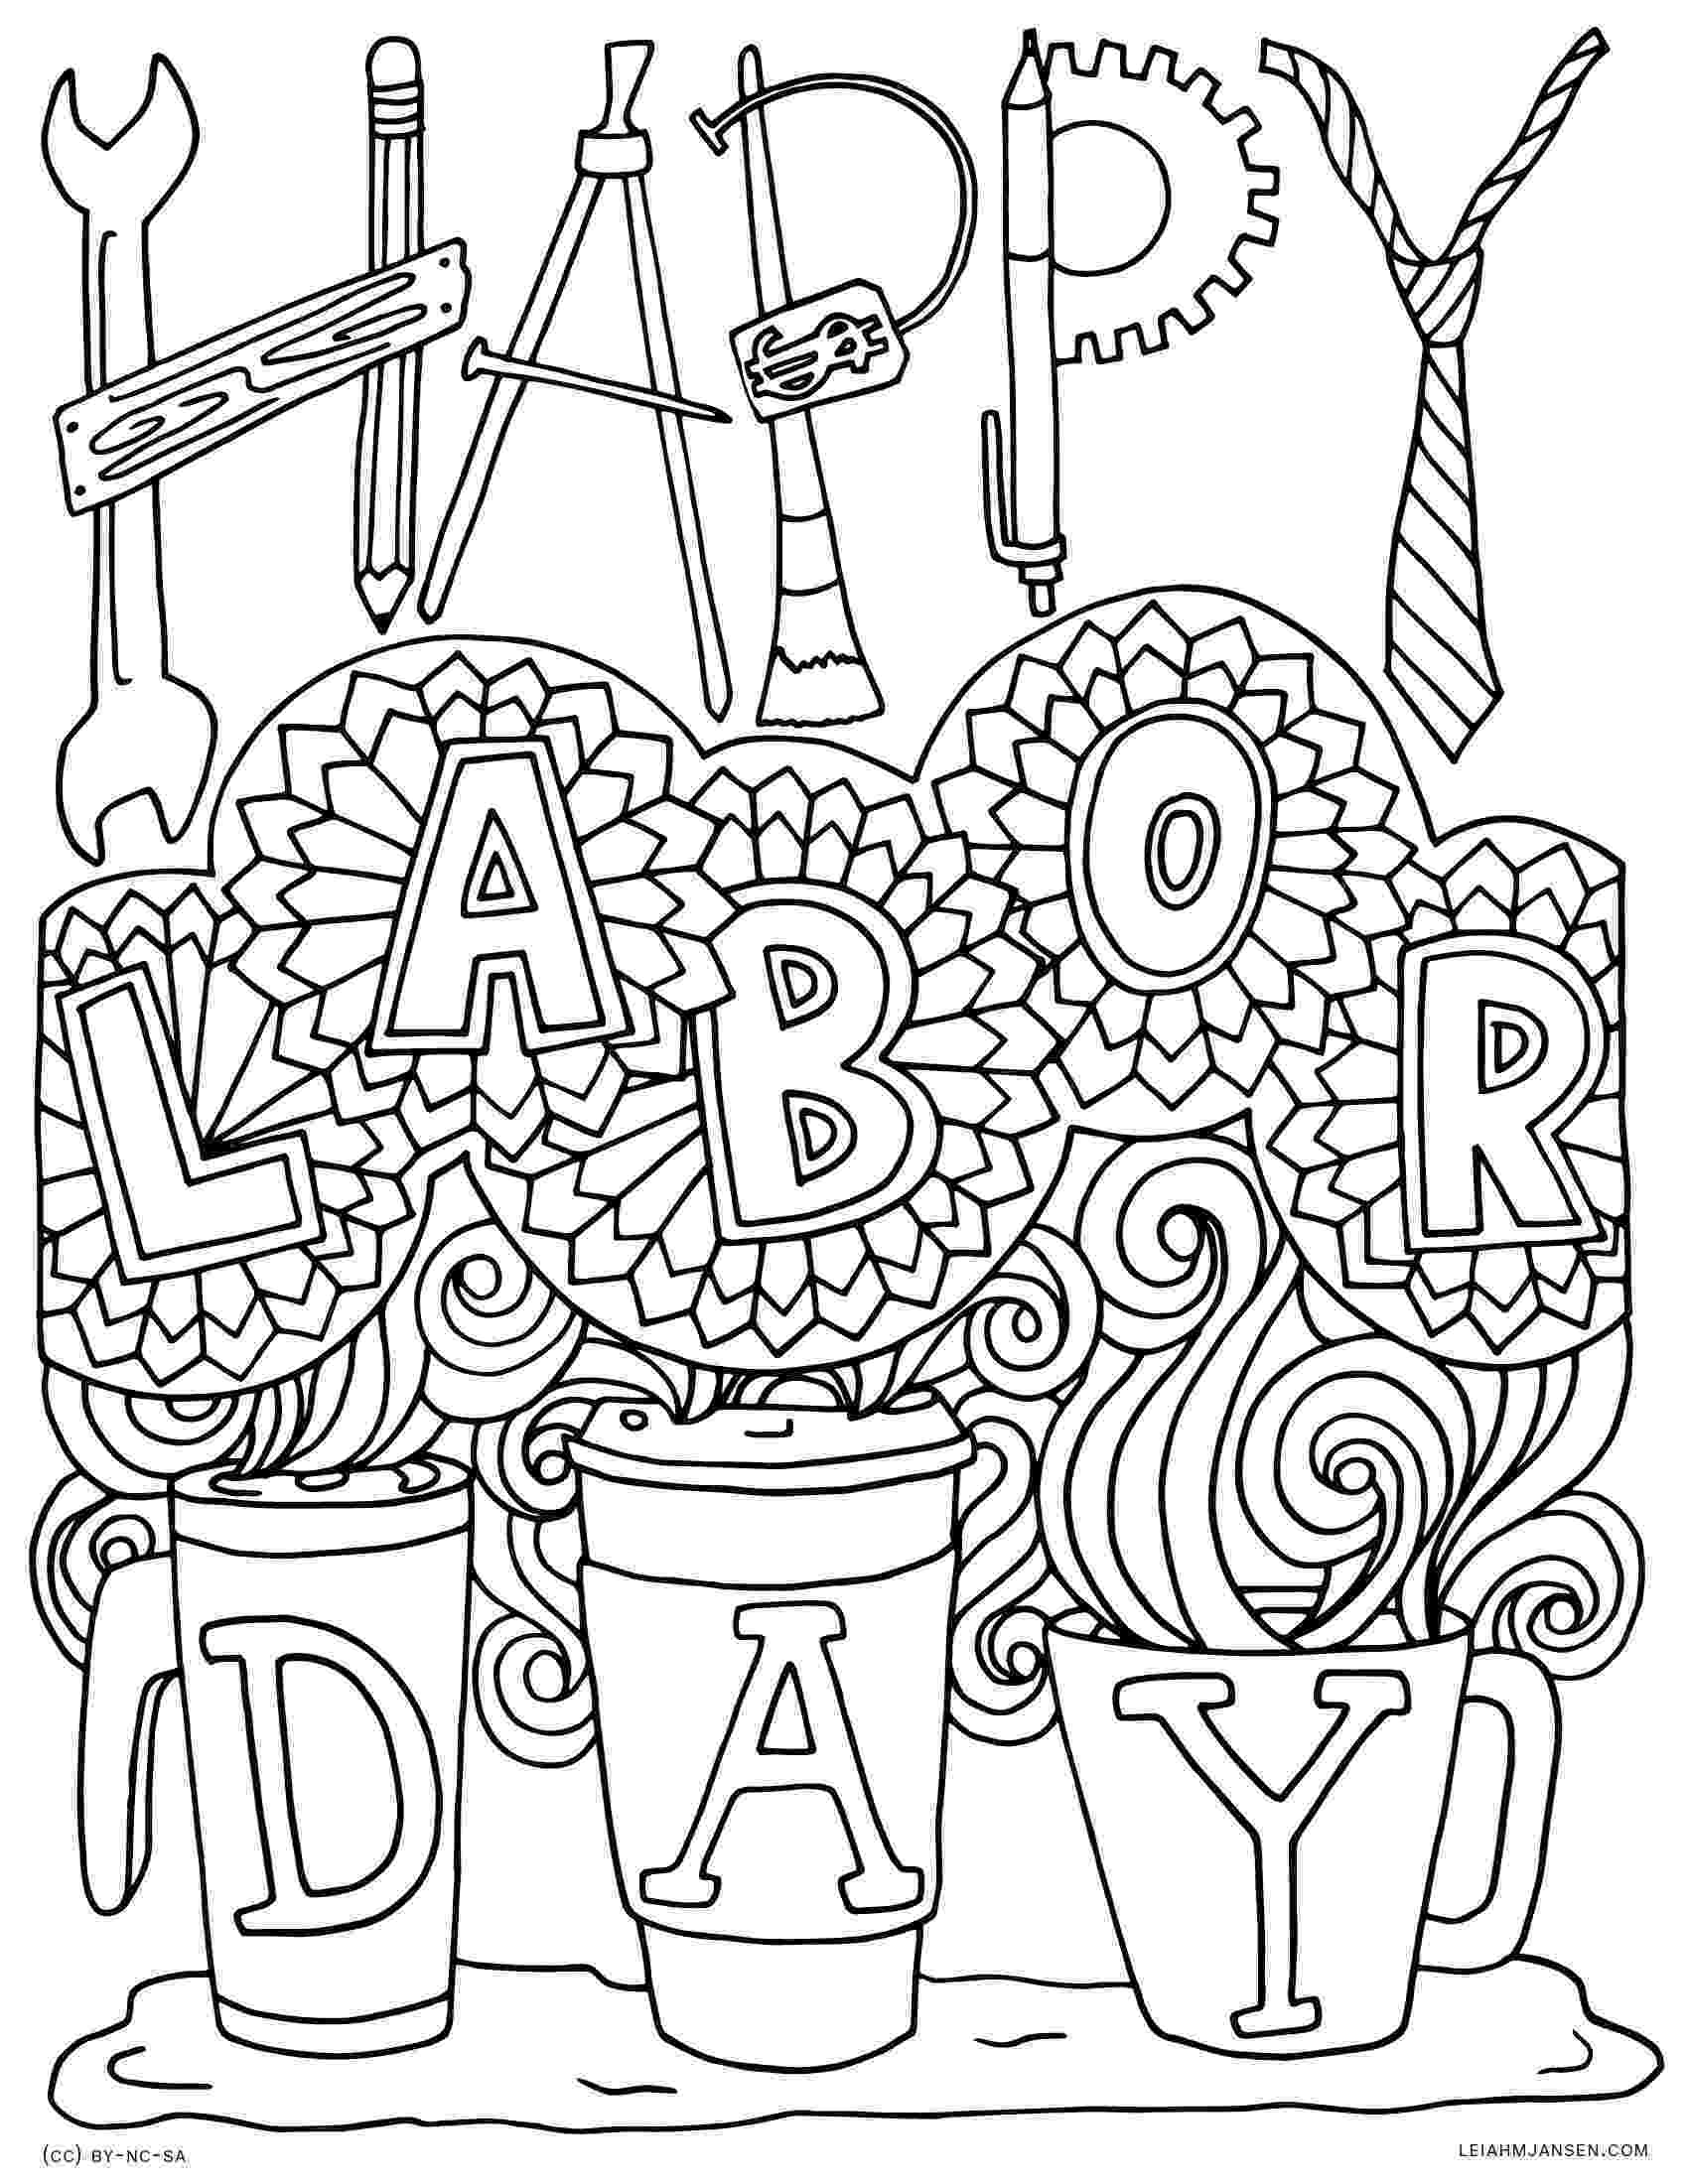 labor day coloring pages coloring pages coloring day pages labor